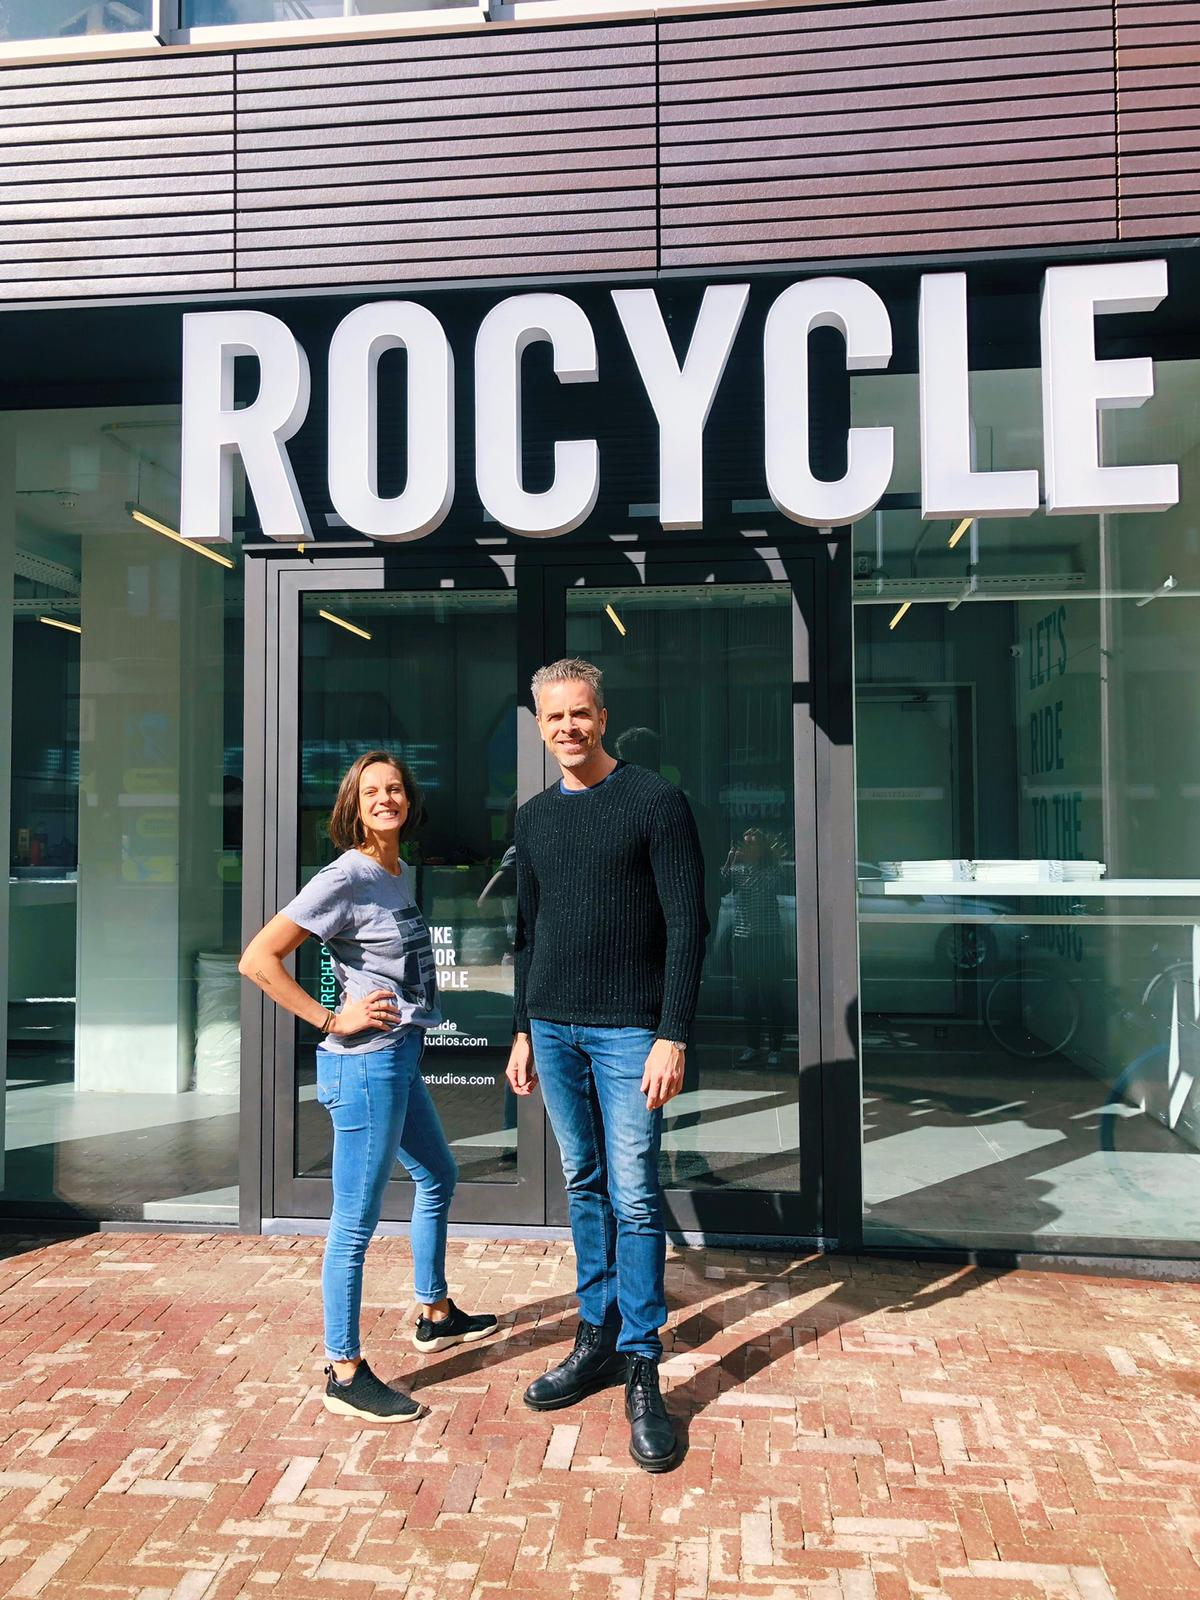 2019 - Roxy and Rogier at the opening of the first studio outside of Amsterdam, Rocycle Utrecht